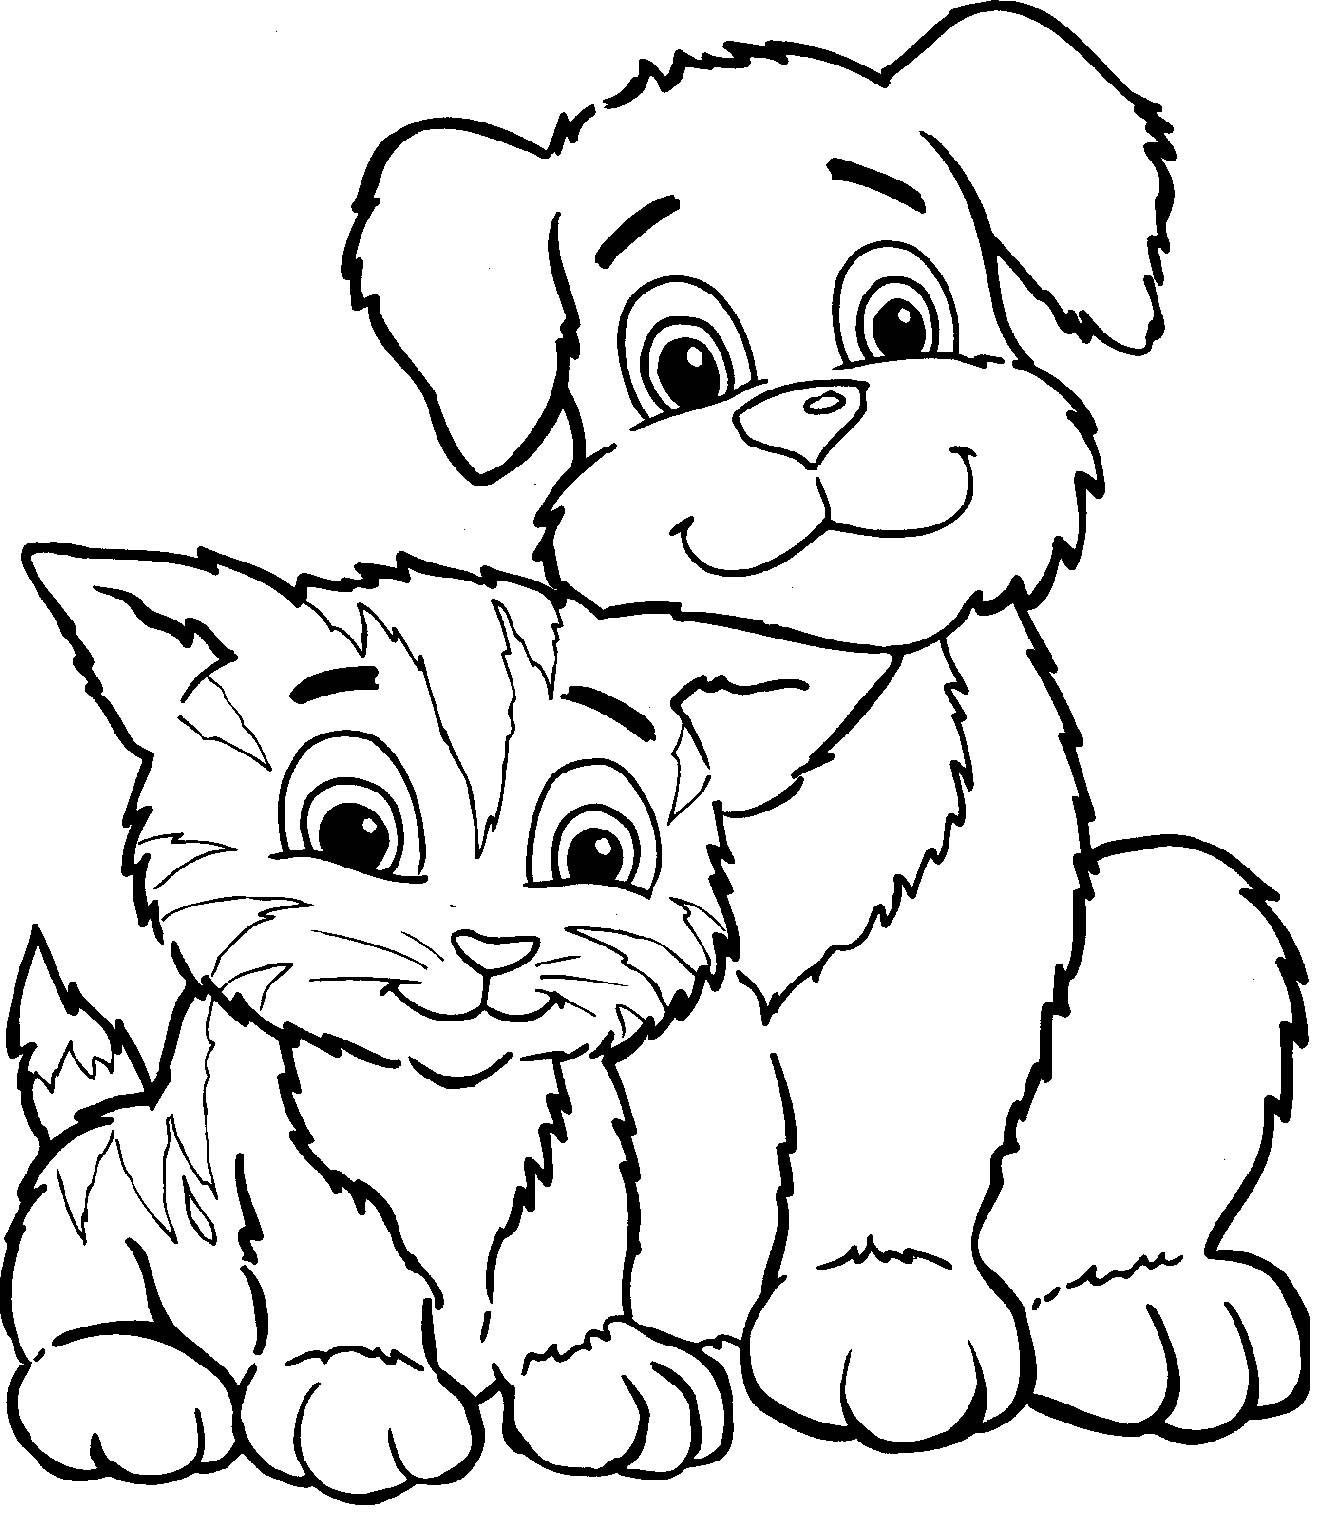 Cat And Dog Coloring Pages From The Thousand Images On